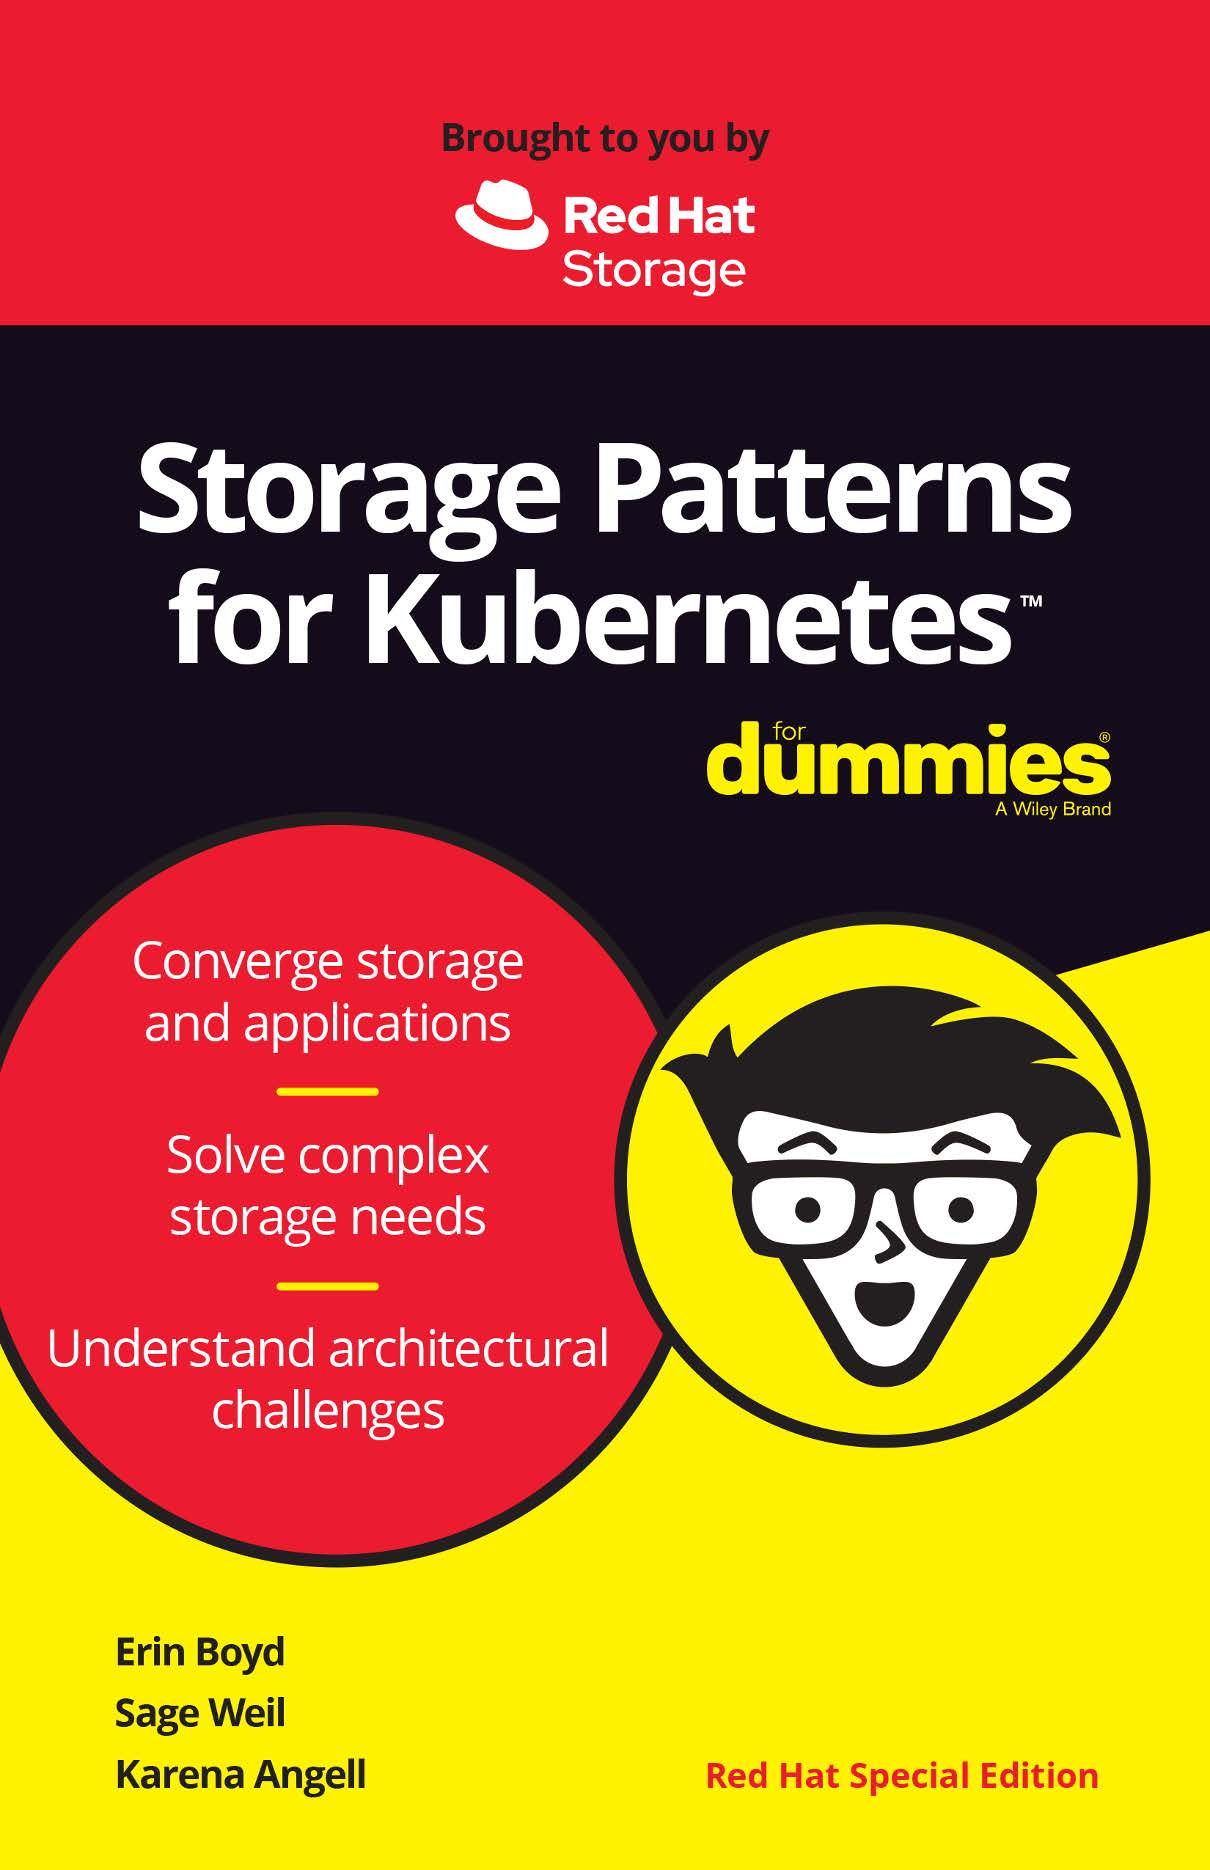 st-storage-patterns-kubernetes-dummies-ebook-f20626-201911-en_Page_01